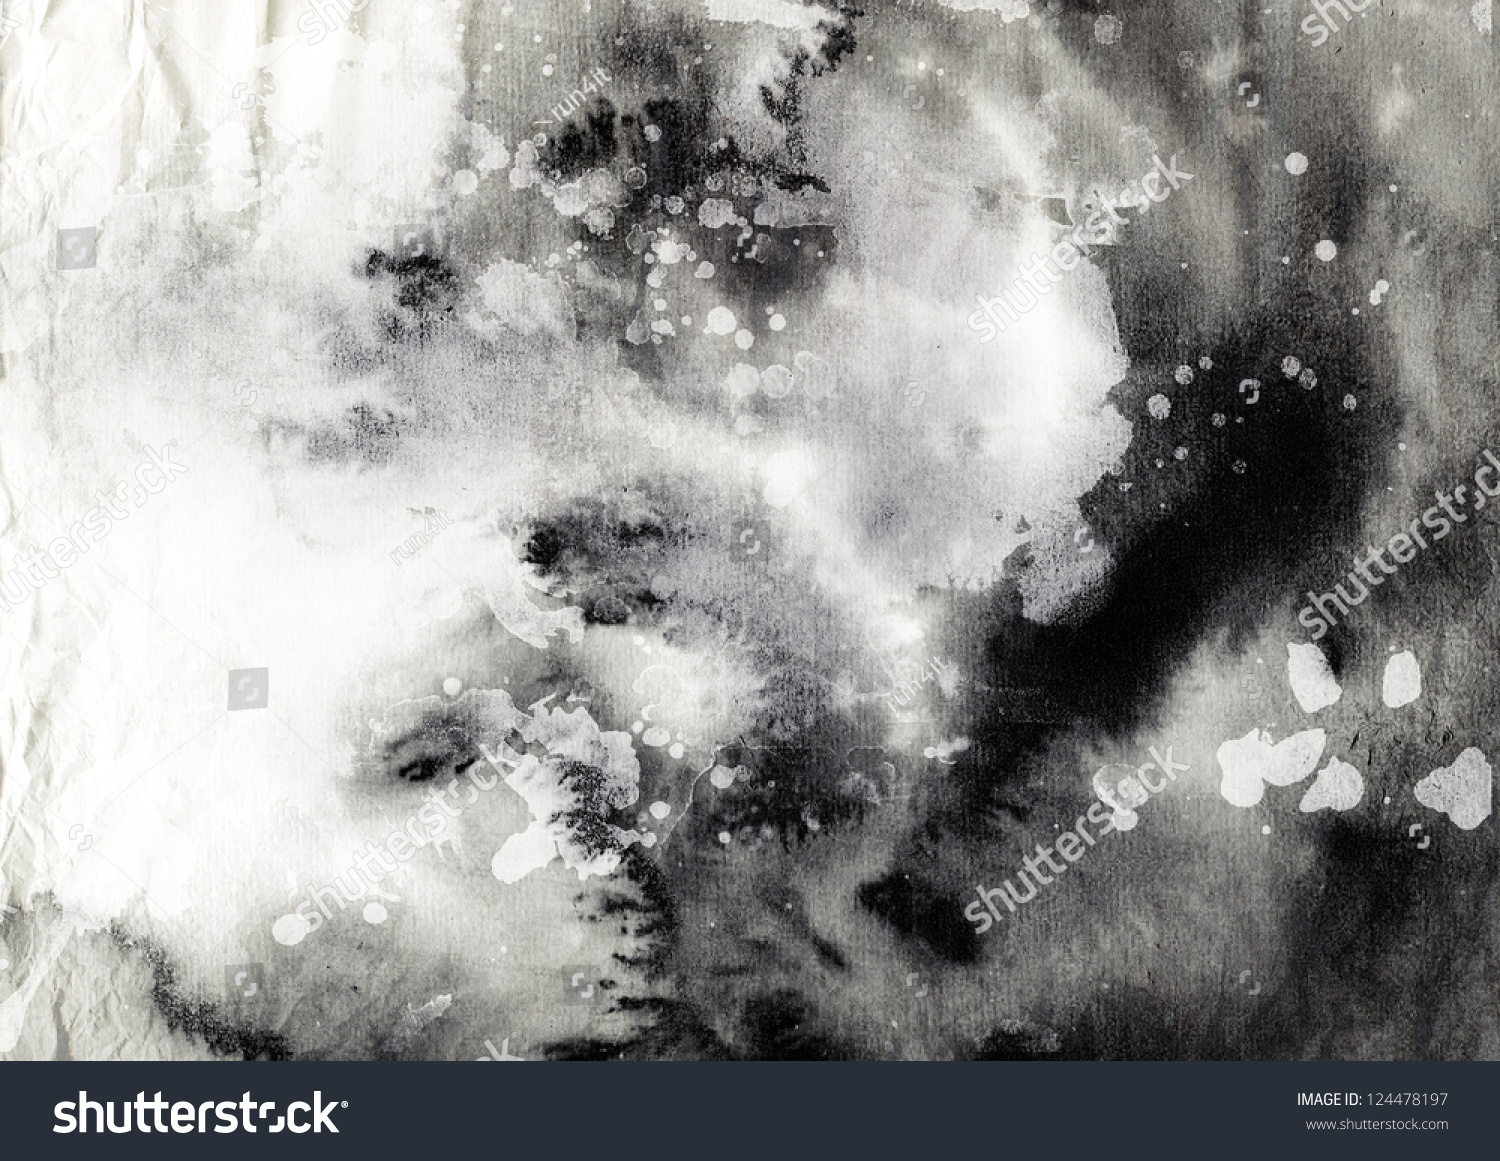 Stock Photo Abstract Black And White Ink Painting On Grunge Paper Texture Artistic Stylish Background